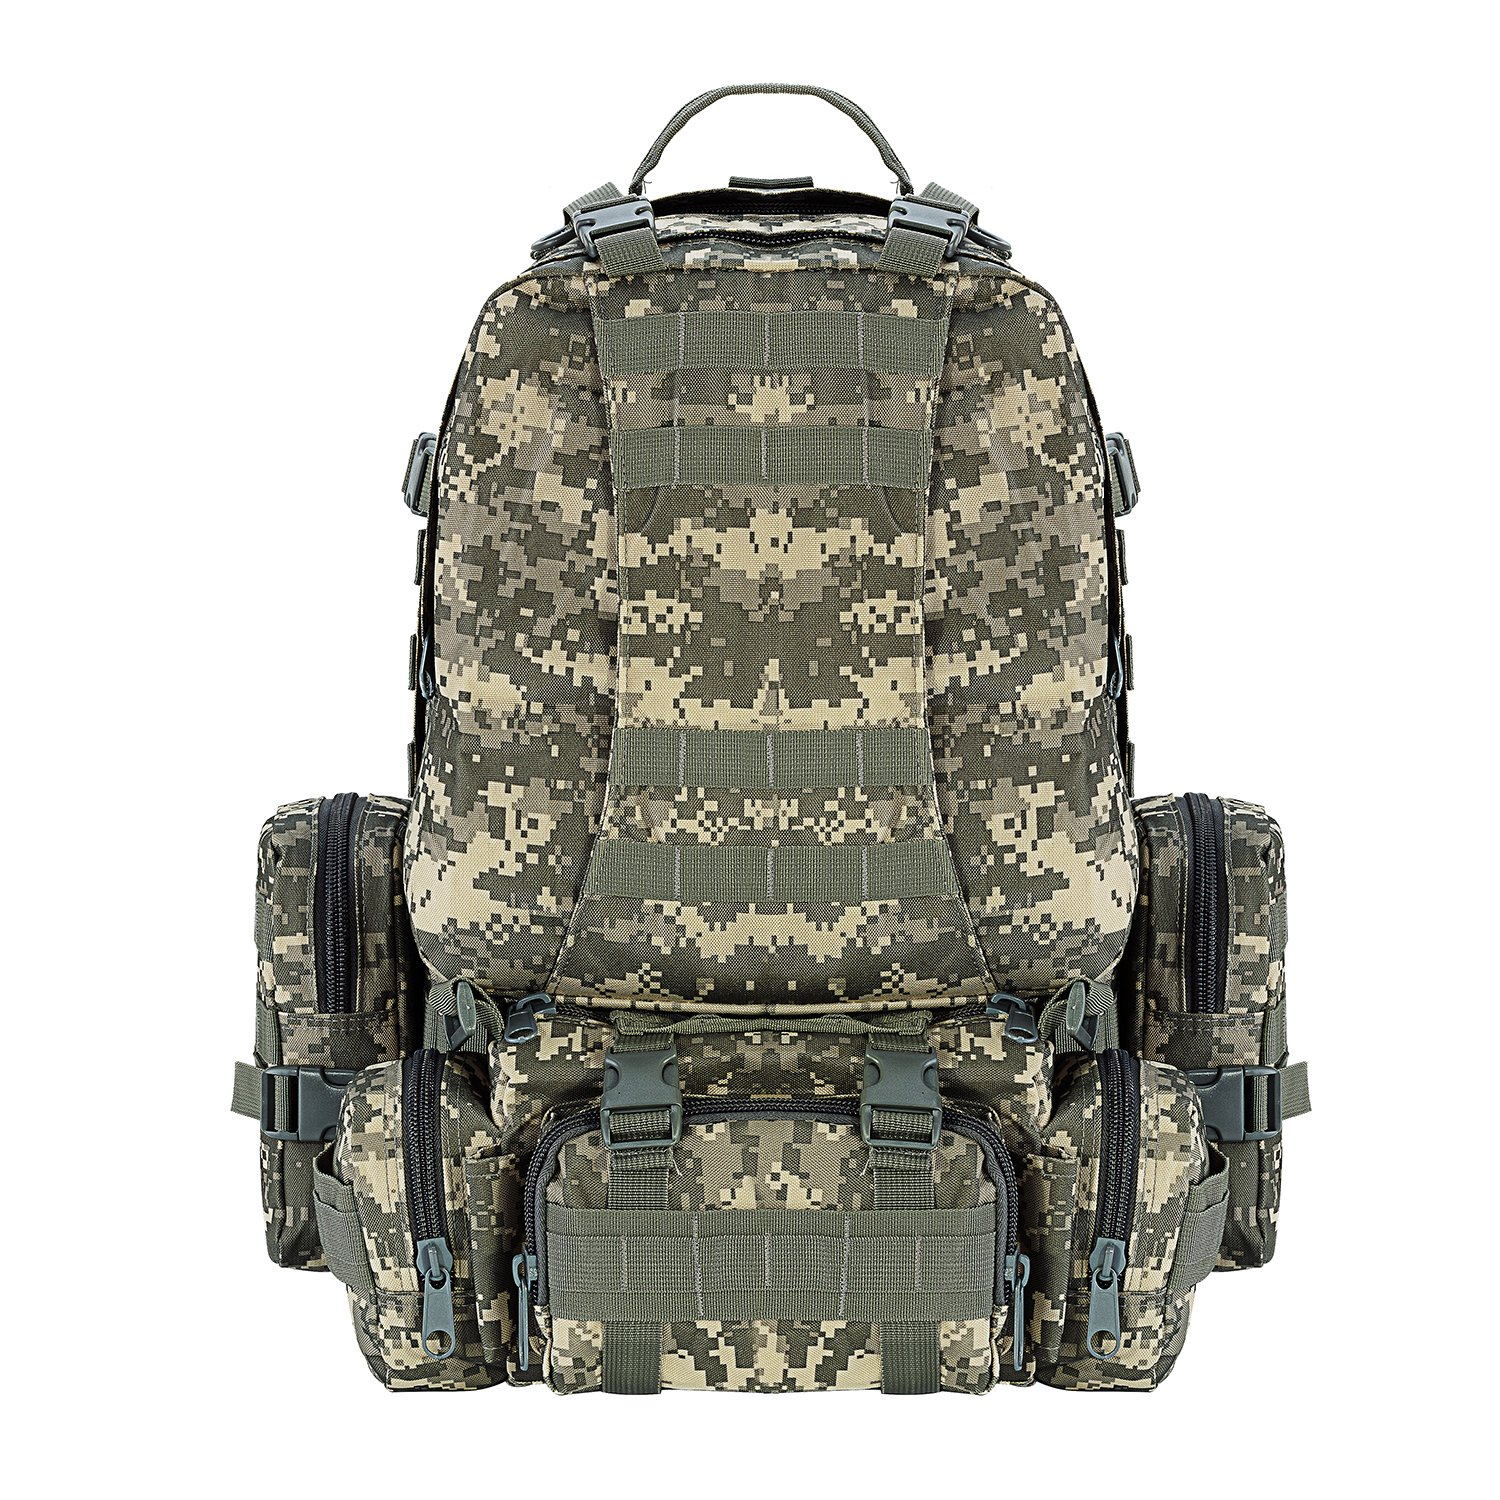 Amazon.com : CVLIFE Outdoor 50L Military Rucksacks Tactical ...